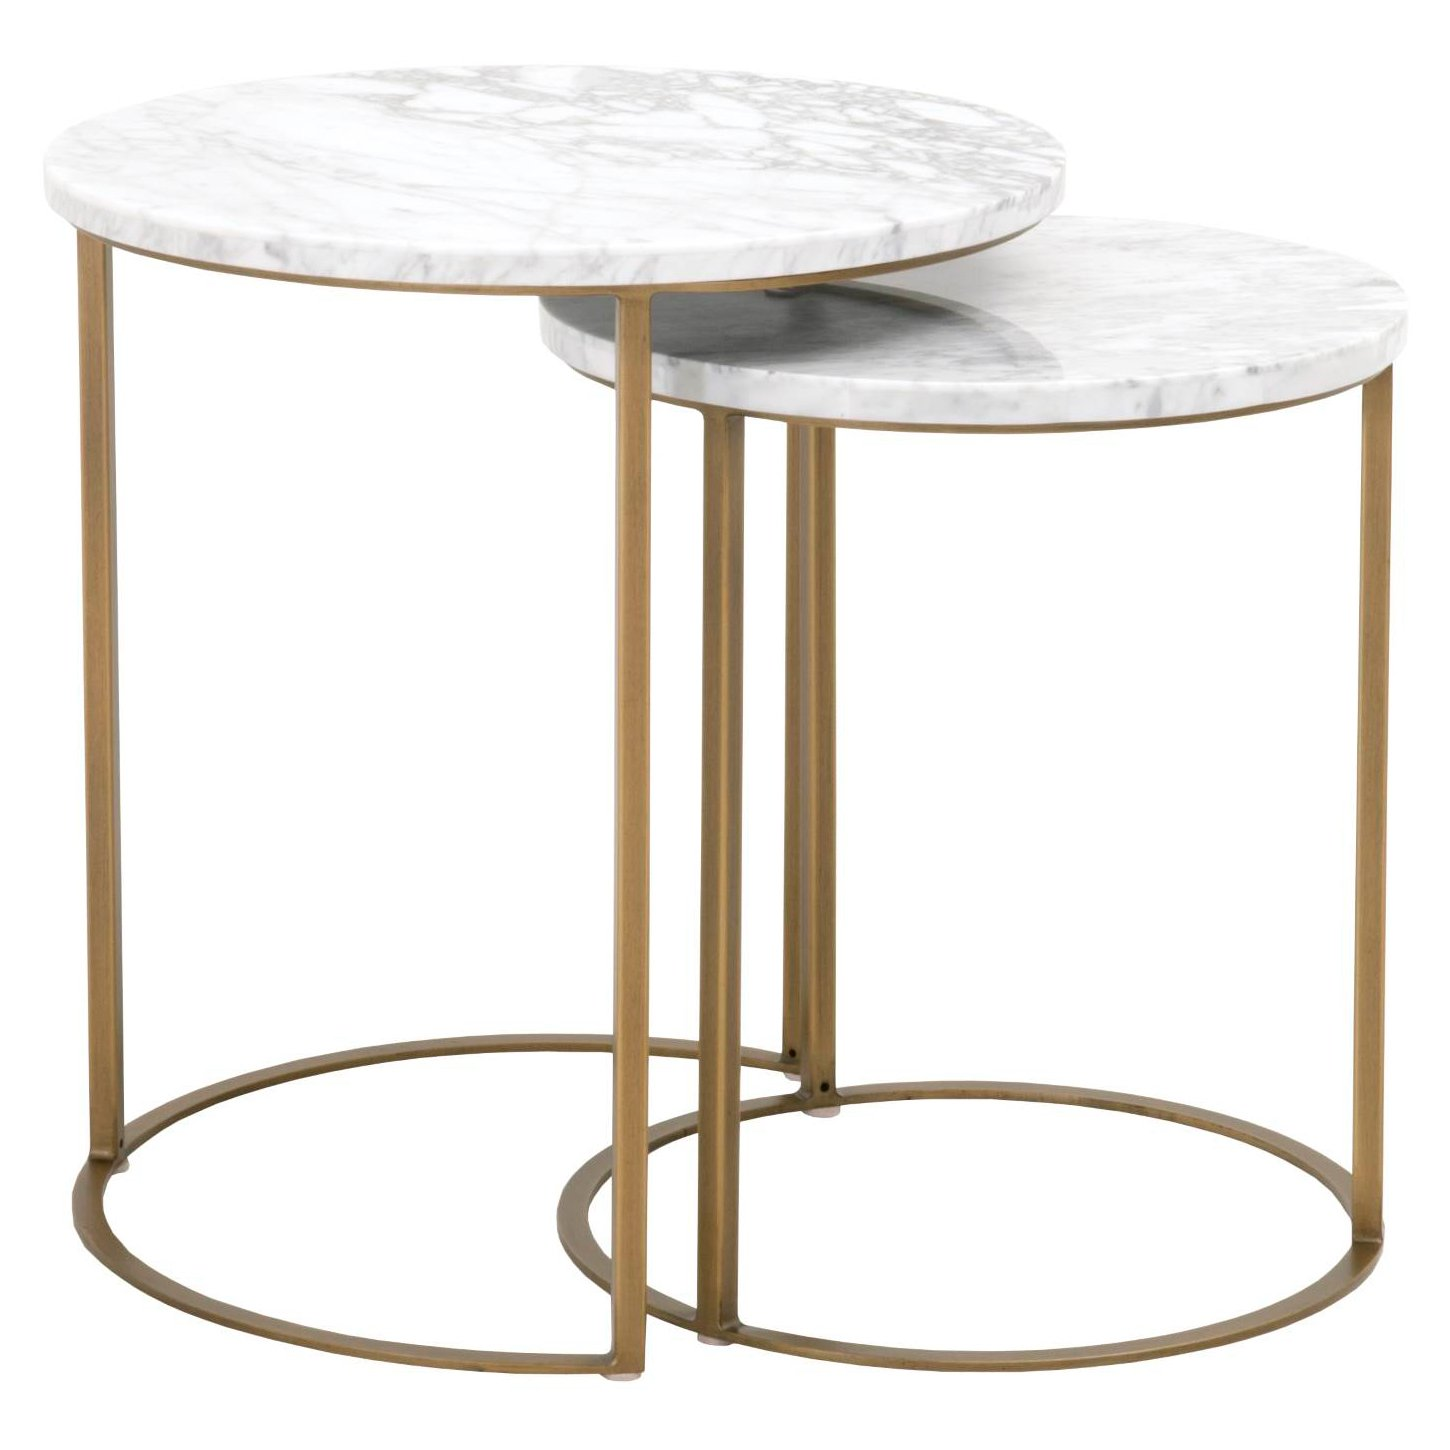 Carrera Round Nesting Accent Table Set Of 2 Nesting Accent Tables Round Nesting Coffee Tables Nesting Coffee Tables [ 1450 x 1450 Pixel ]